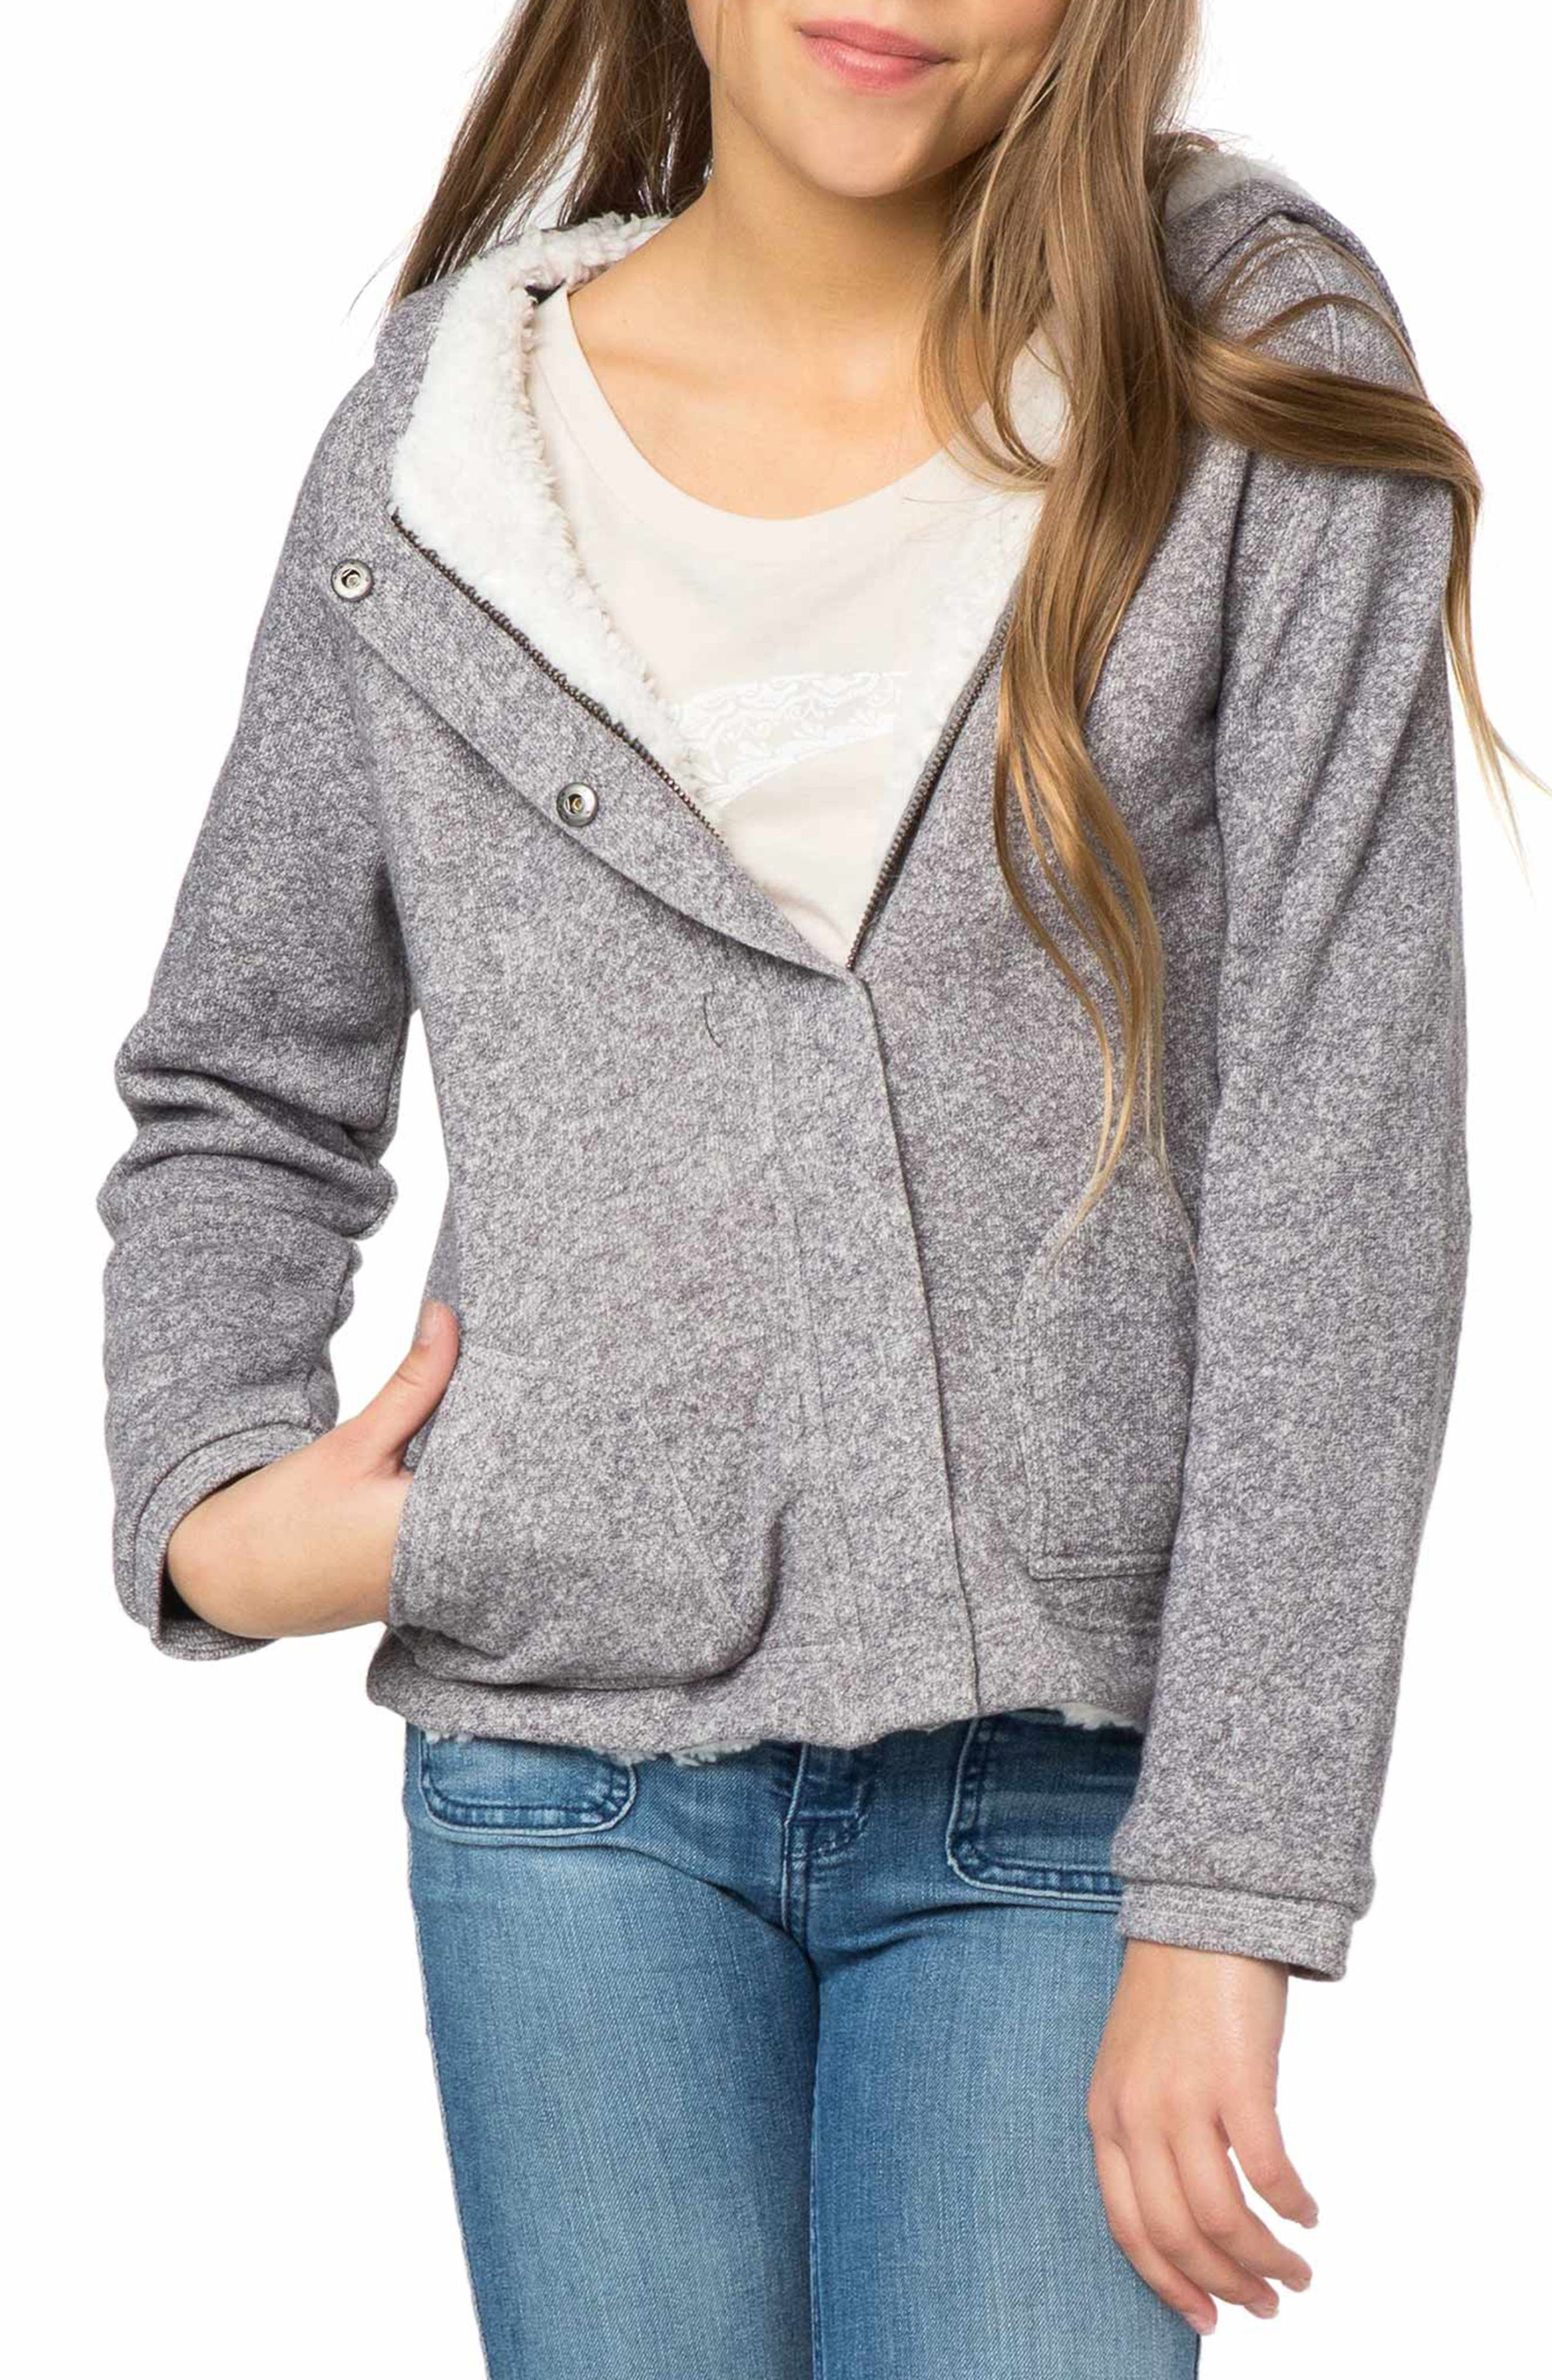 Main Image - O'Neill Lorie Faux Fur Lined Hoodie (Big Girls)